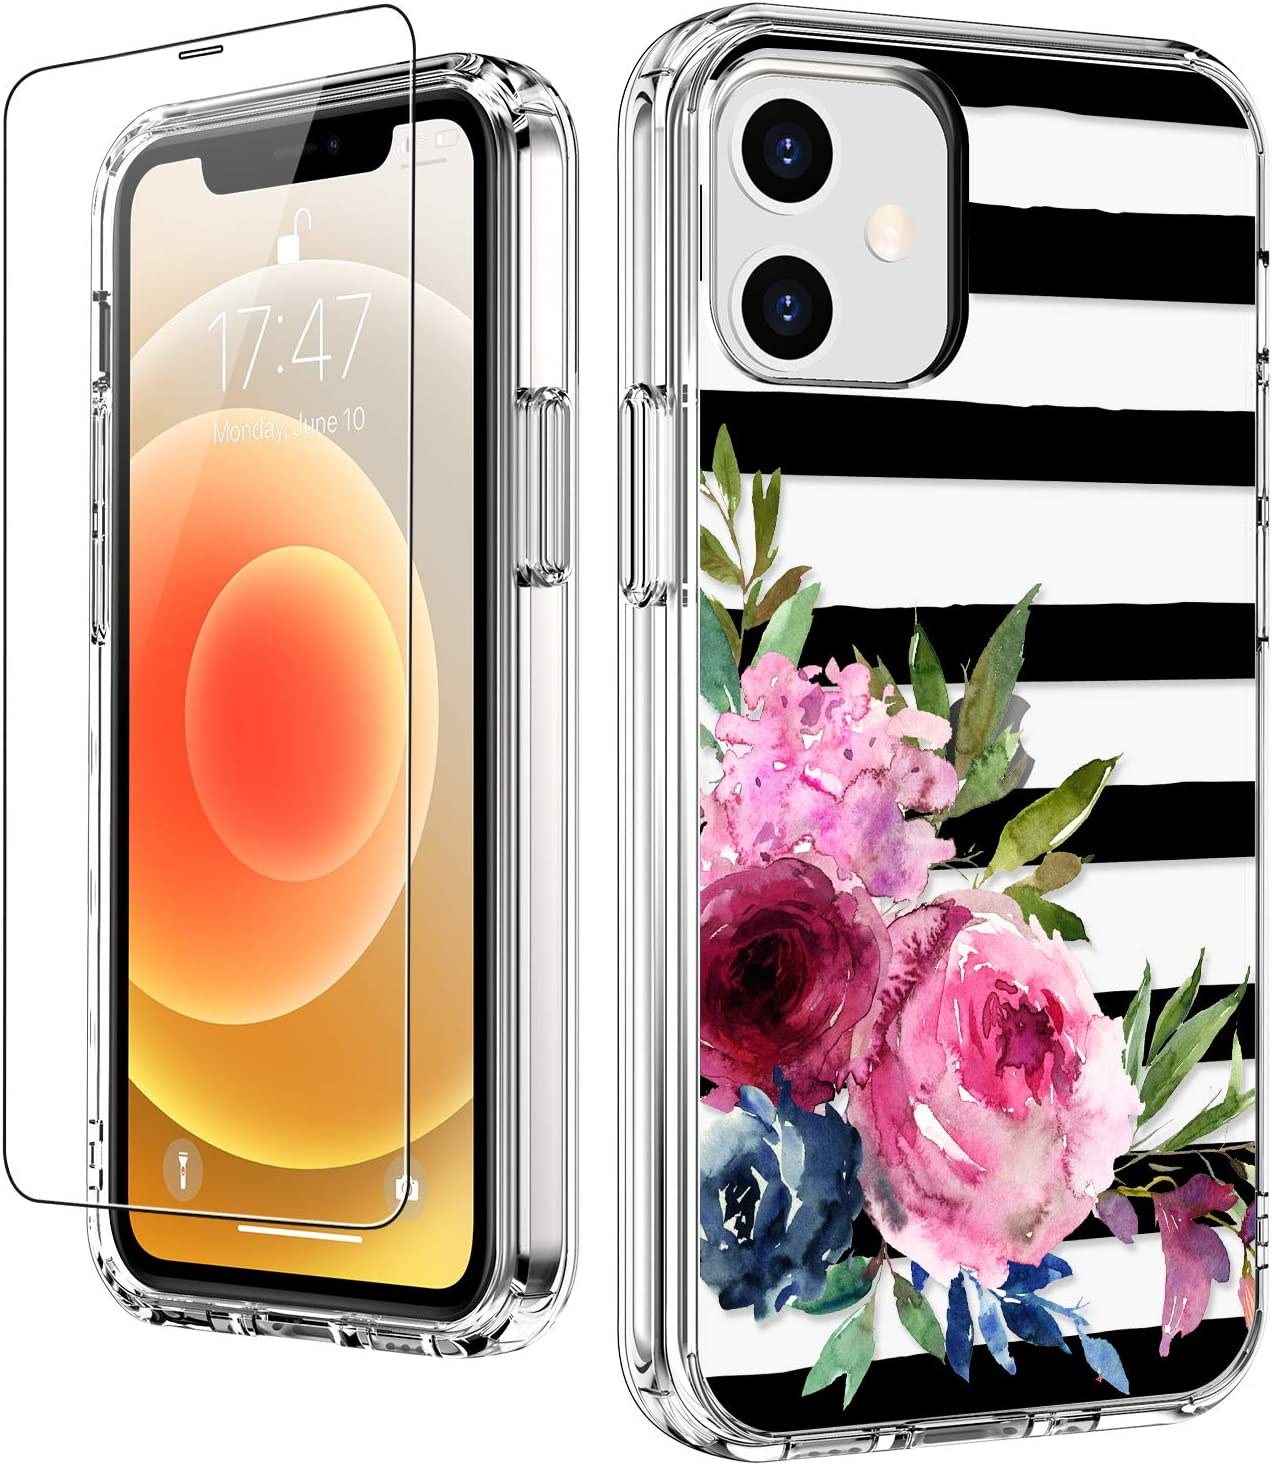 LUHOURI for iPhone 12 Mini Case with Screen Protector,Elegant Floral Flower Designs on Clear Bumper Cover for Women Girls,Shockproof Slim Fit Protective Phone Case for iPhone 12 Mini 5.4